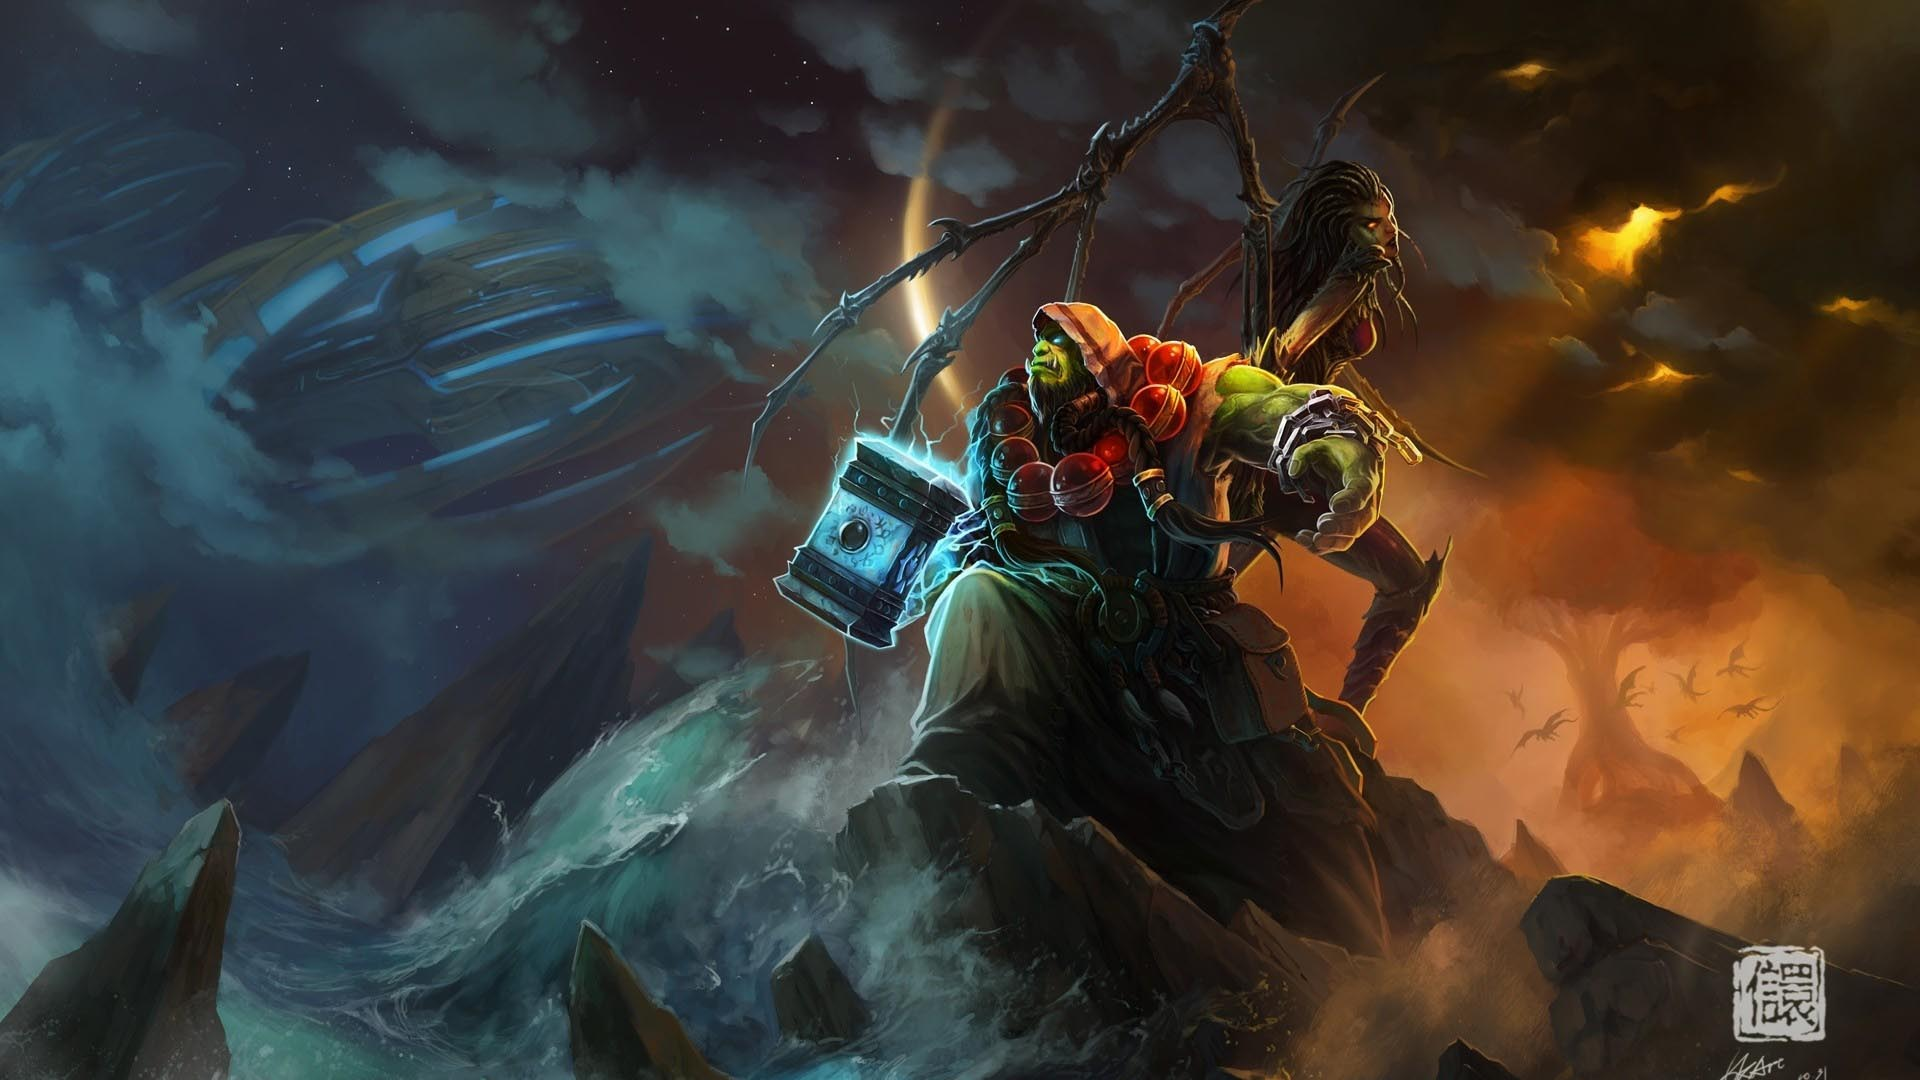 World of Warcraft Ocean Shaman Wallpaper | World of Warcraft Geek